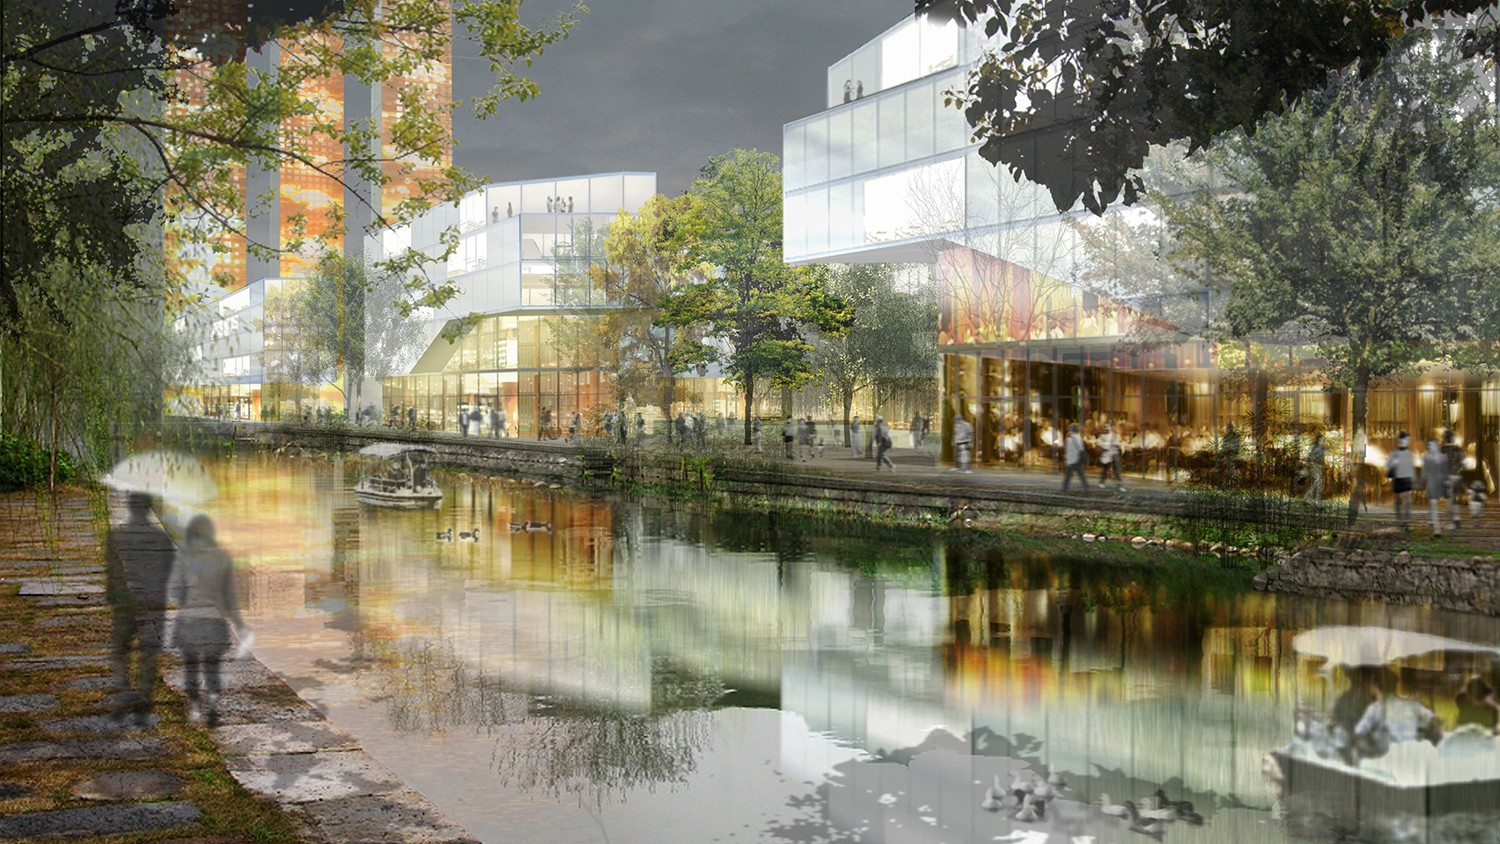 https://s3.us-east-2.amazonaws.com/steven-holl/uploads/projects/project-images/StevenHollArchitects_ShanShui_spreaders existing canal_v3_Gary_WH.jpg